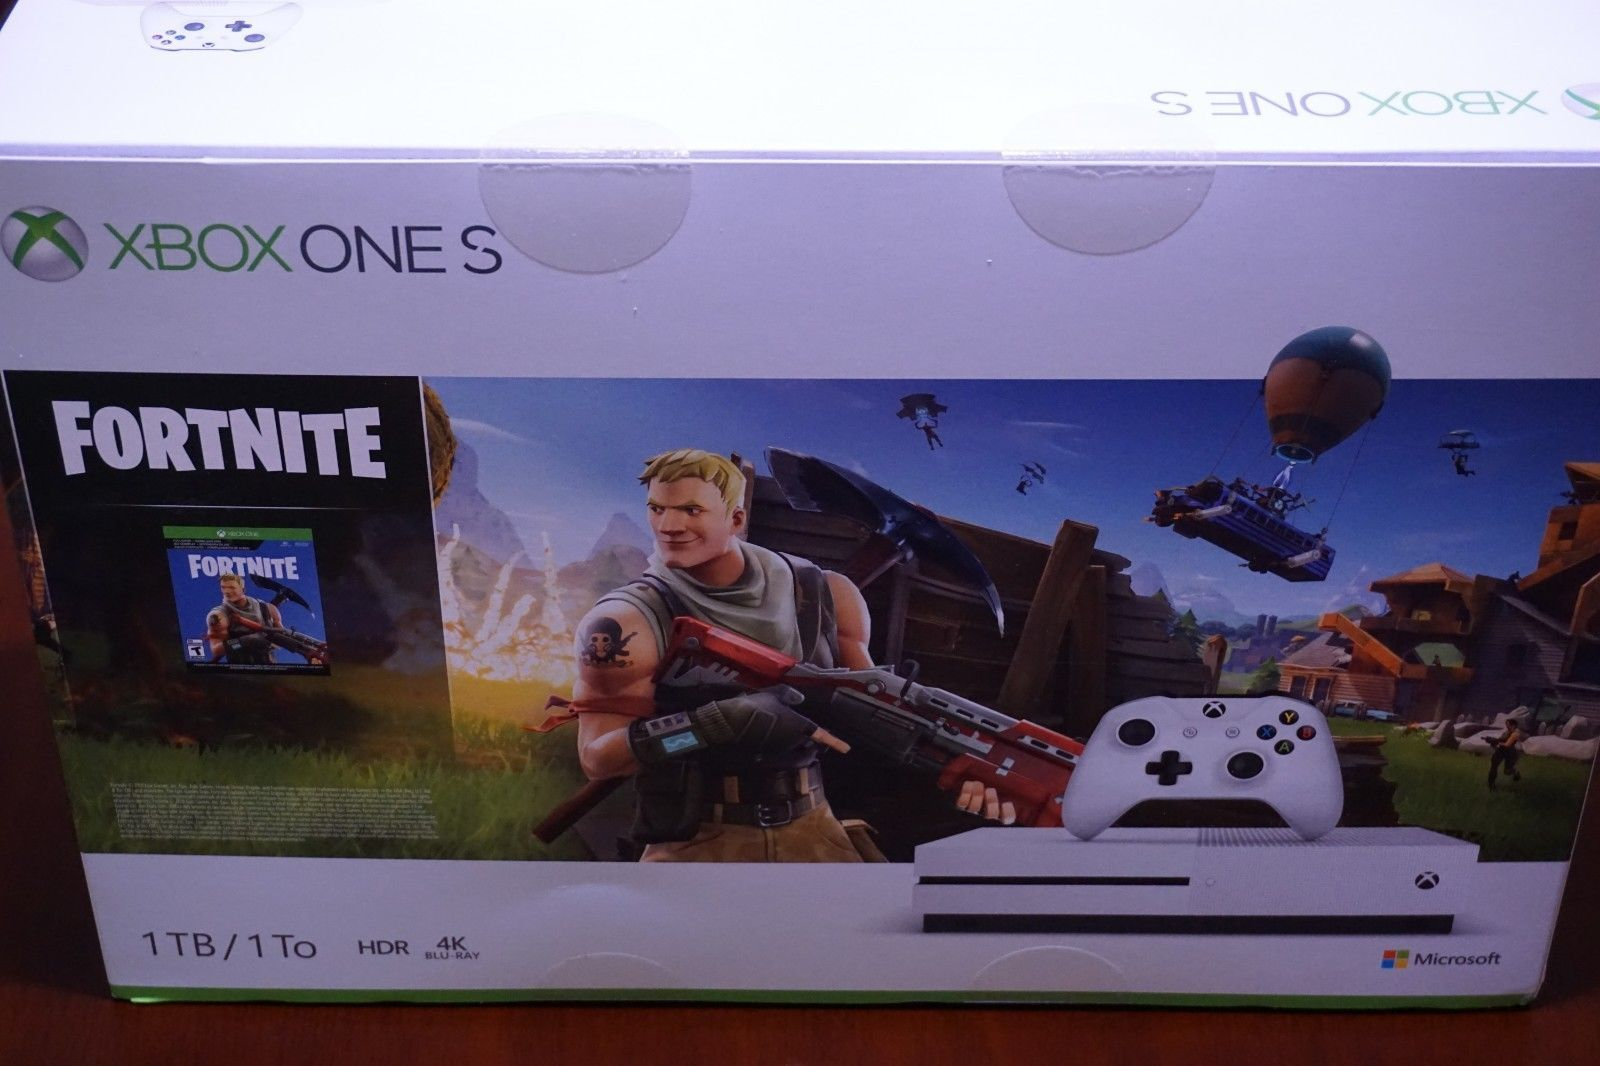 Xbox One S Fortnite Battle Royale Special Edition Bundle 1tb In 2020 Xbox One S Xbox One S 1tb Xbox One